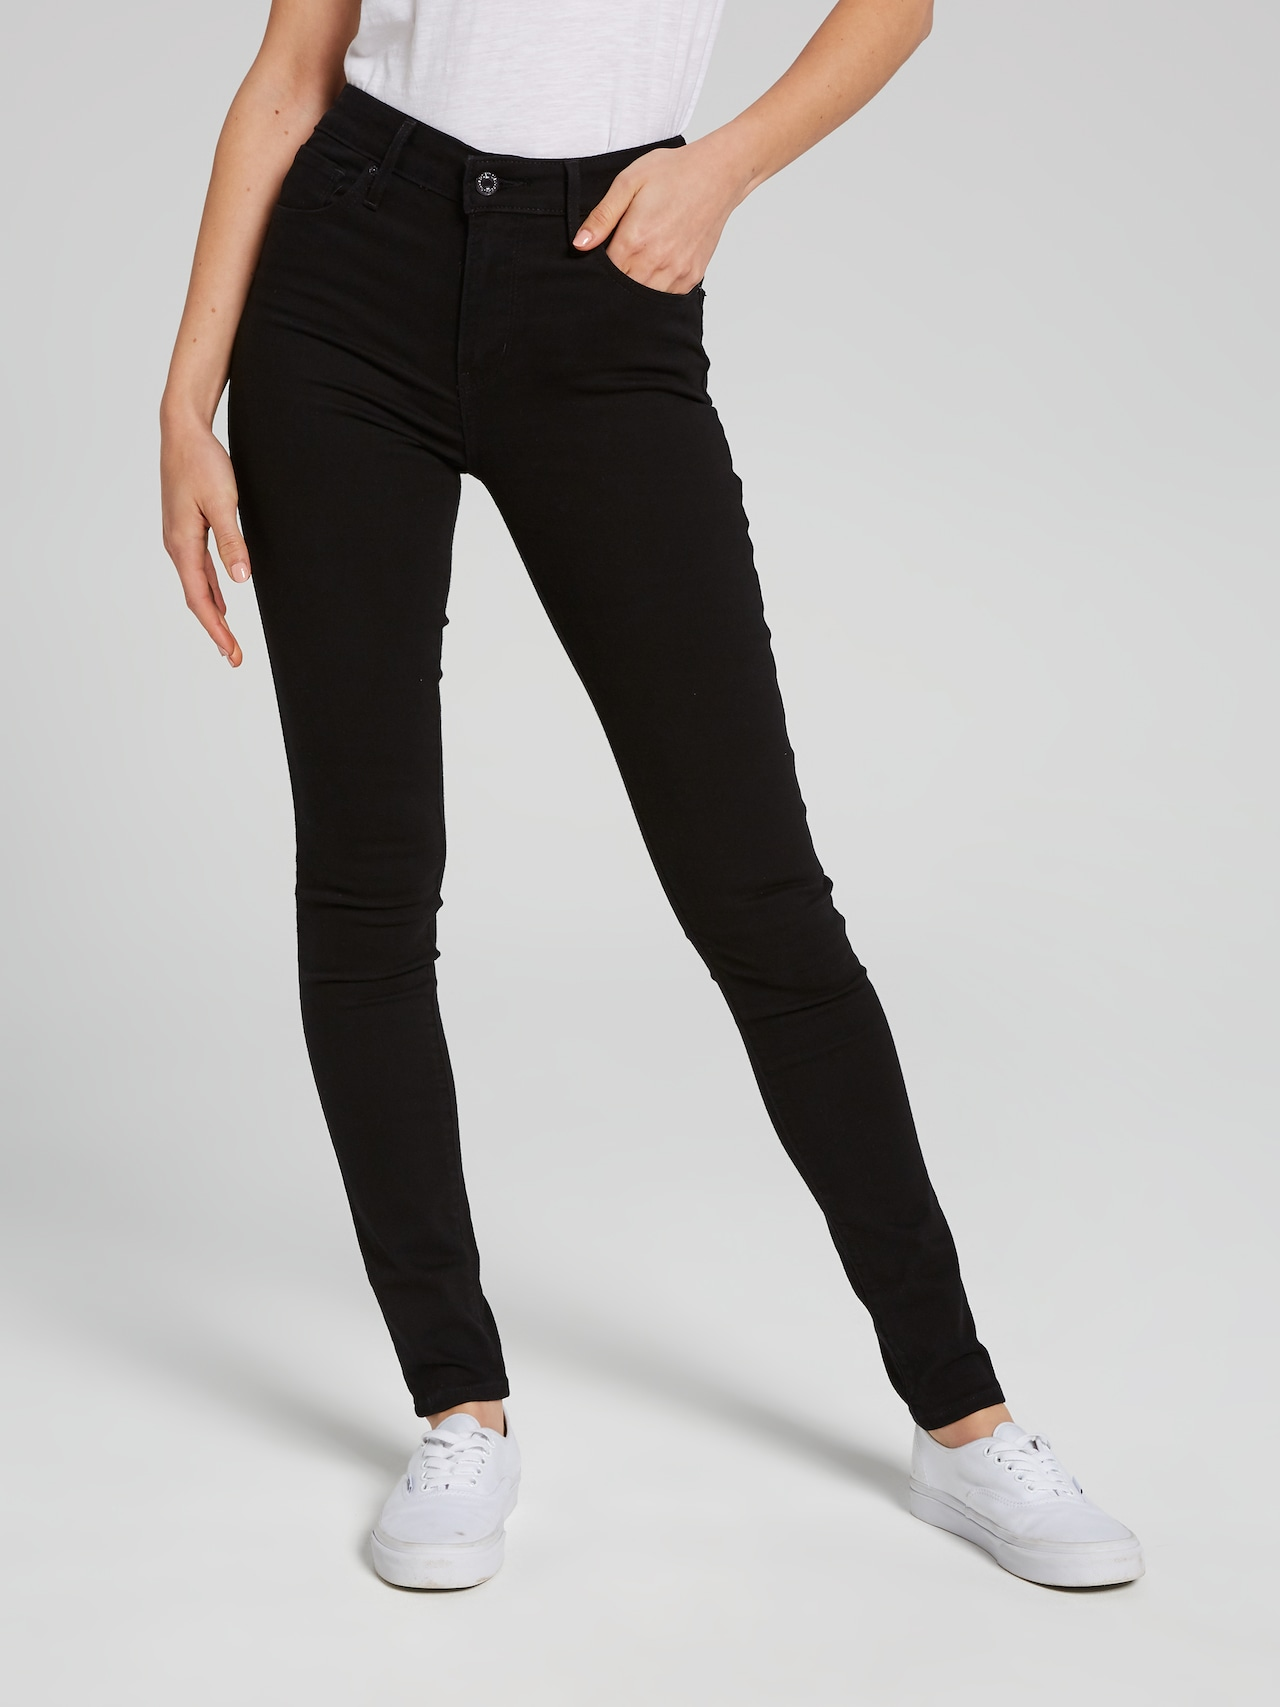 024795ab Levi's 721 High Rise Skinny Jean In Black Sheep - Just Jeans Online